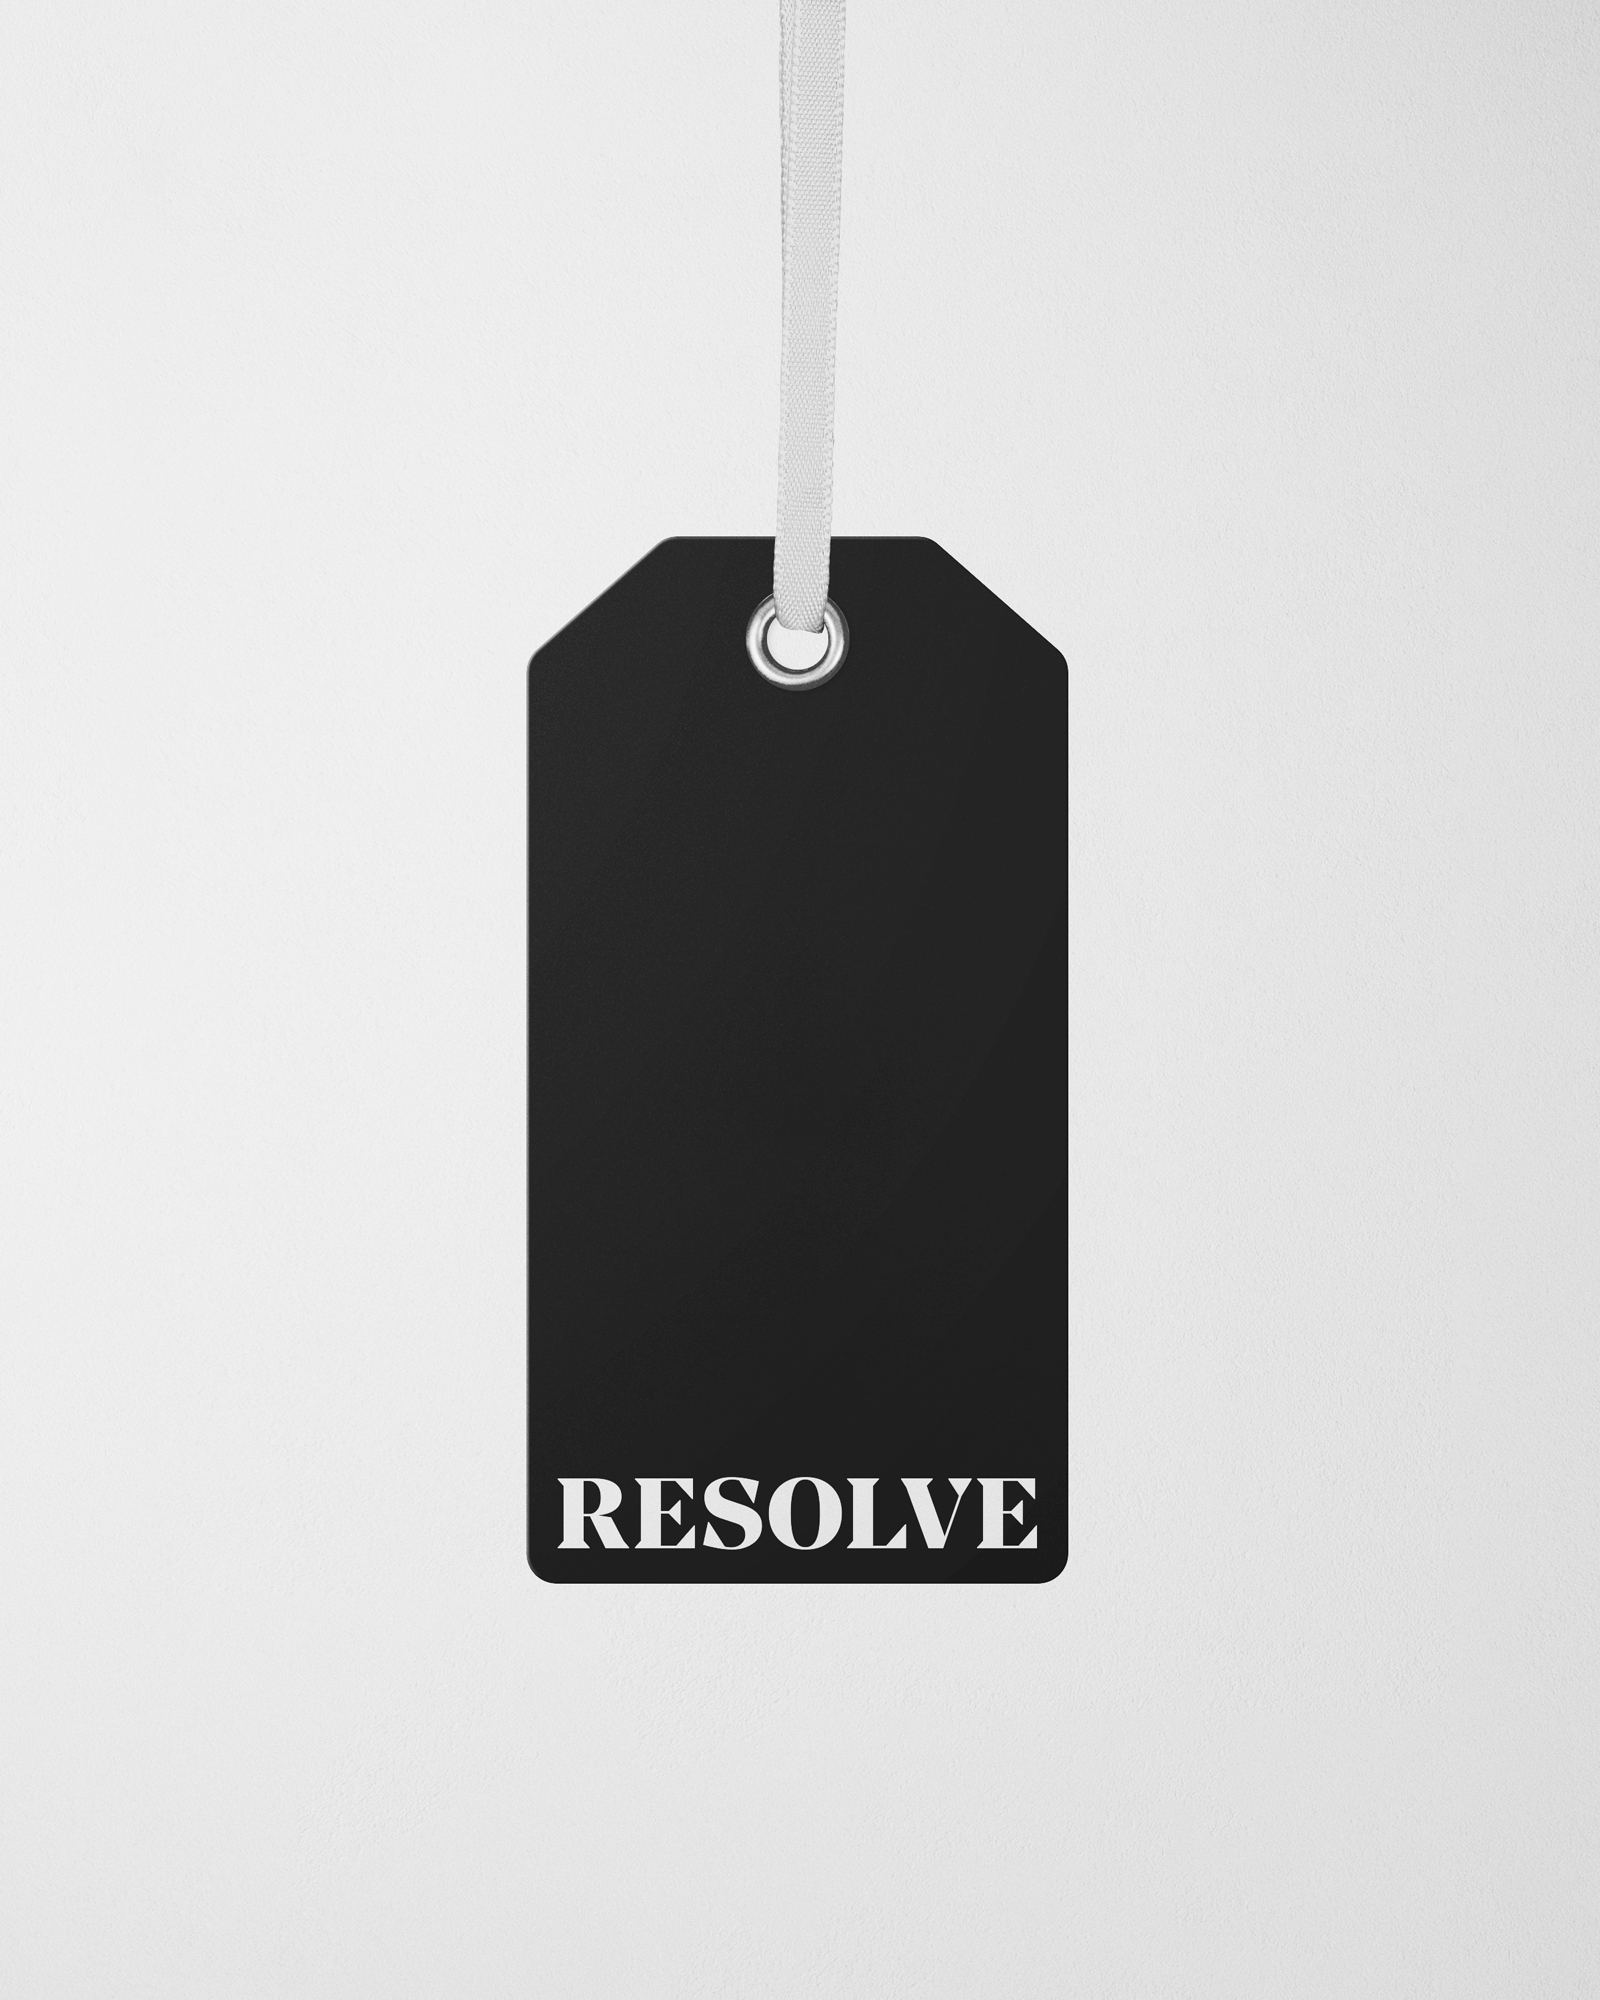 Resolve Clothing branded label swing tag